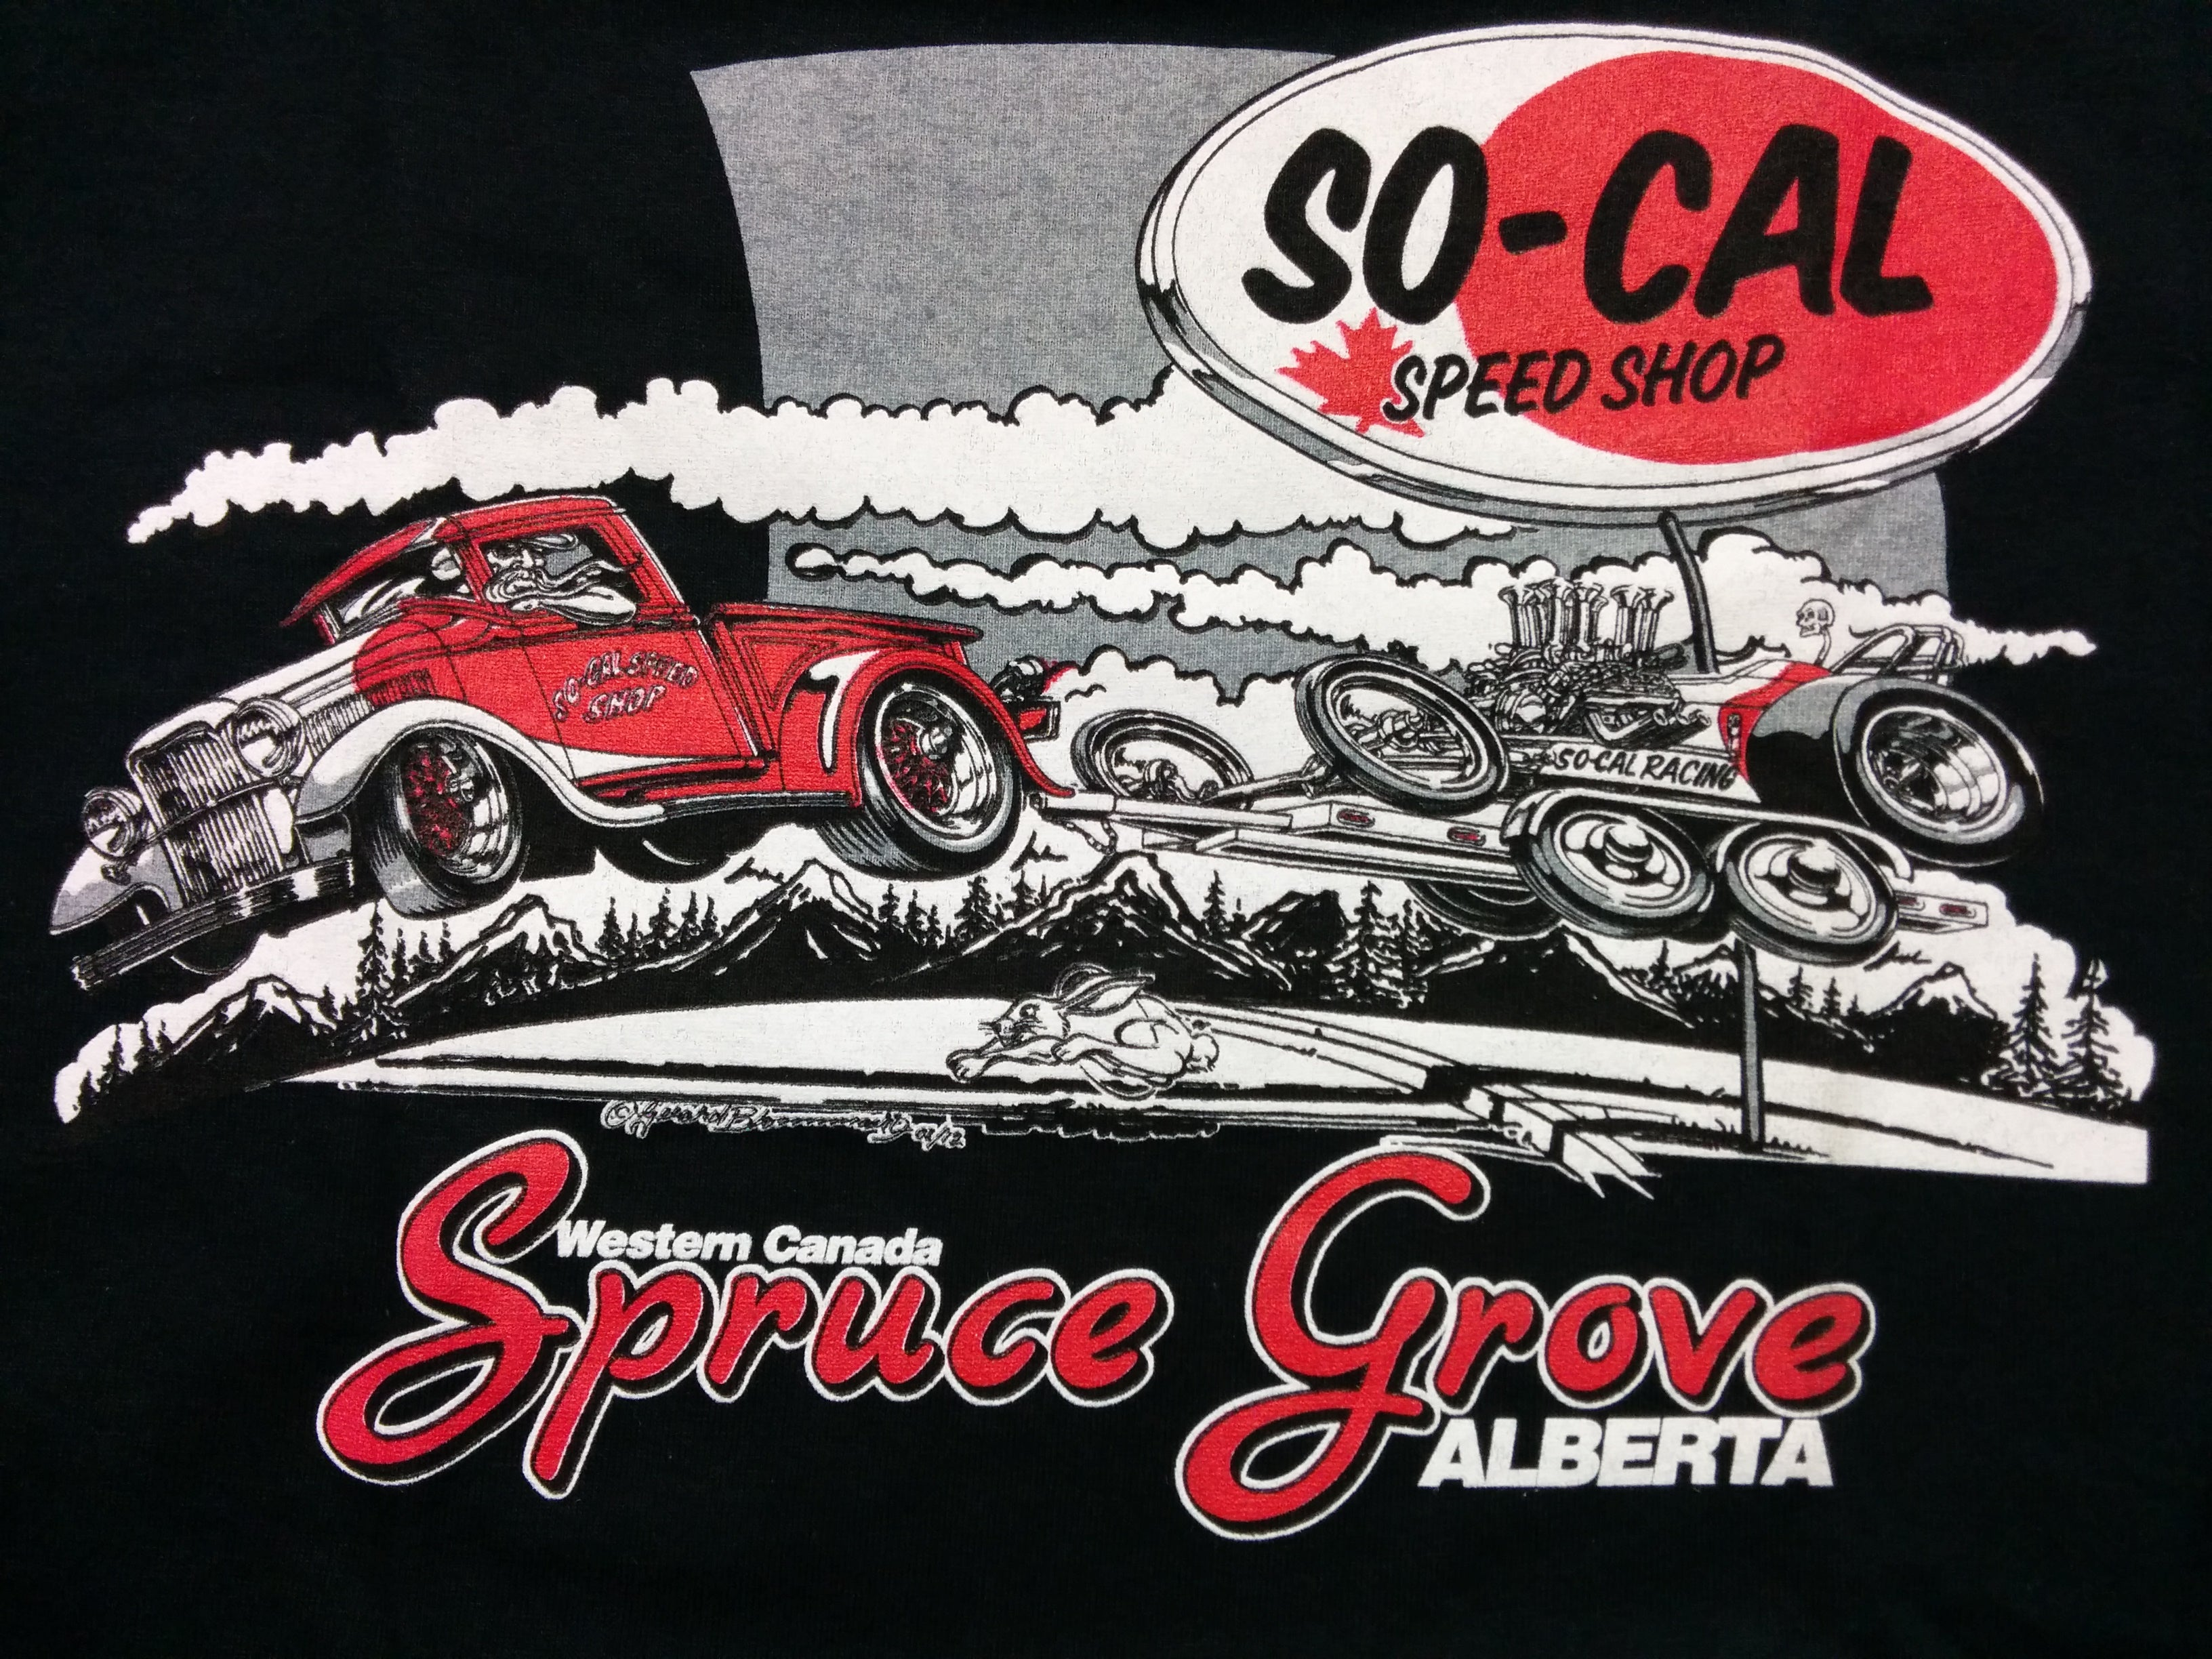 Spruce Grove So-Cal T-Shirt